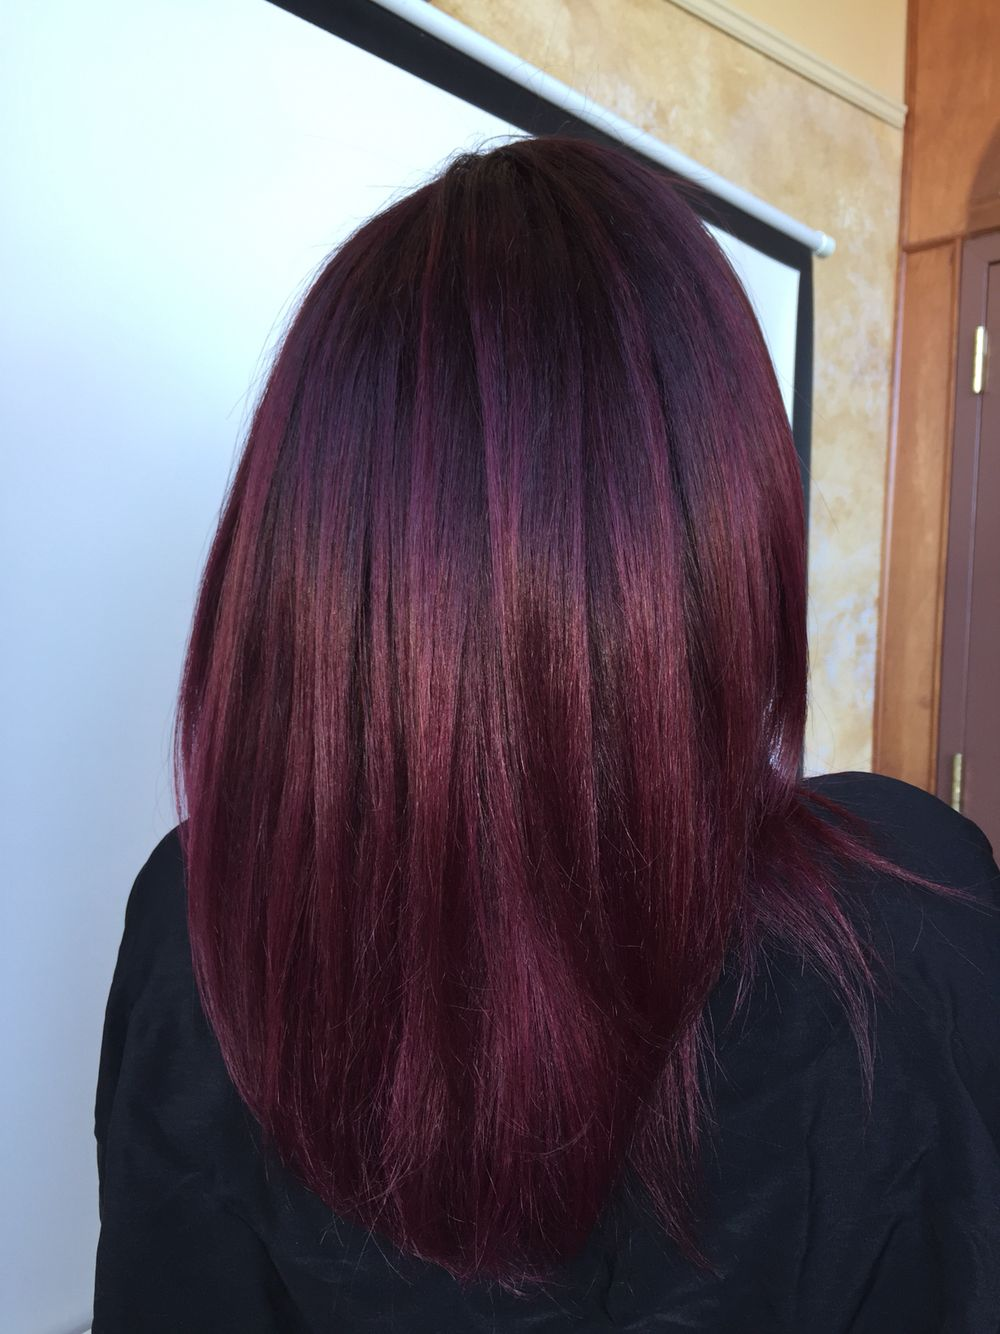 Merlot hair color - 2016 Fall Winter Hair Color Trends Guide Organic Beauty Balayage And Hair Coloring